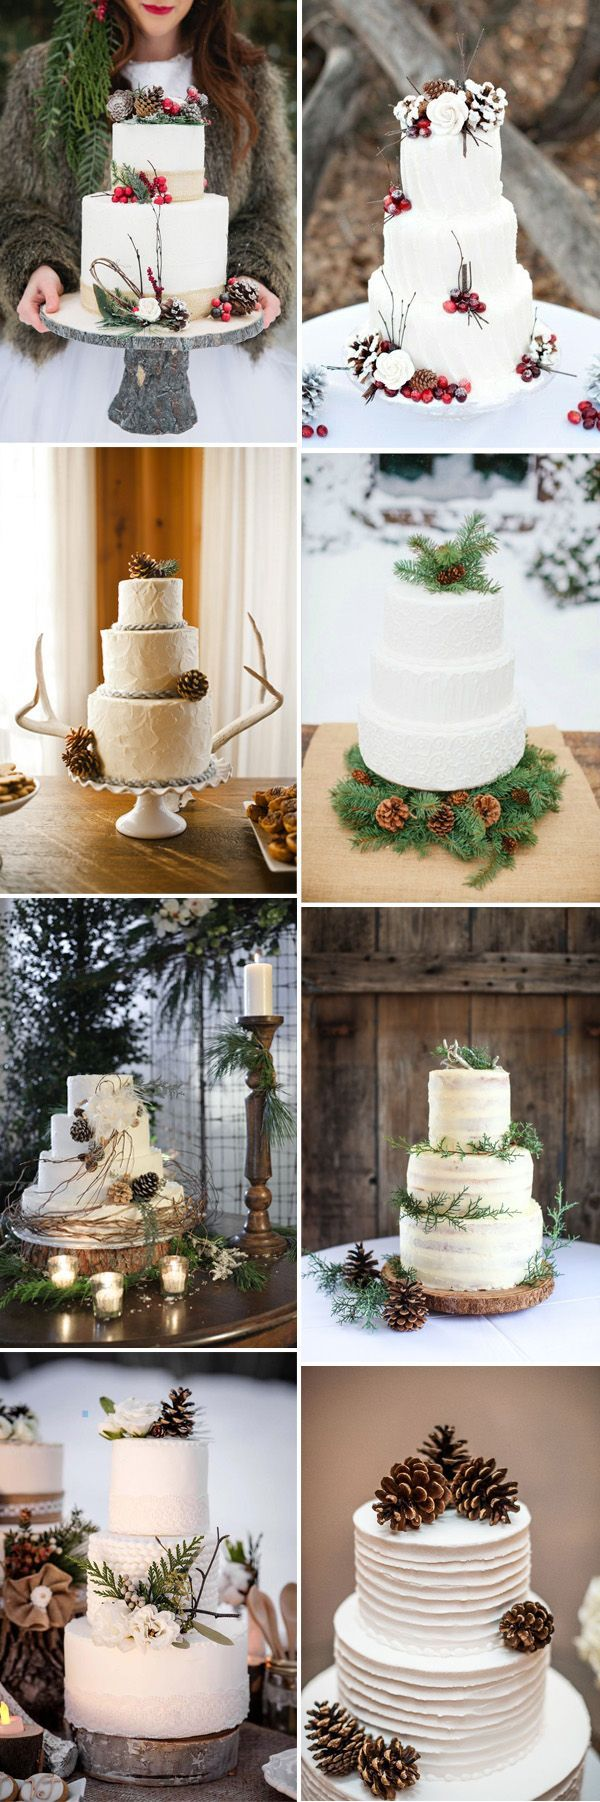 Fabulous white winter wedding cakes.